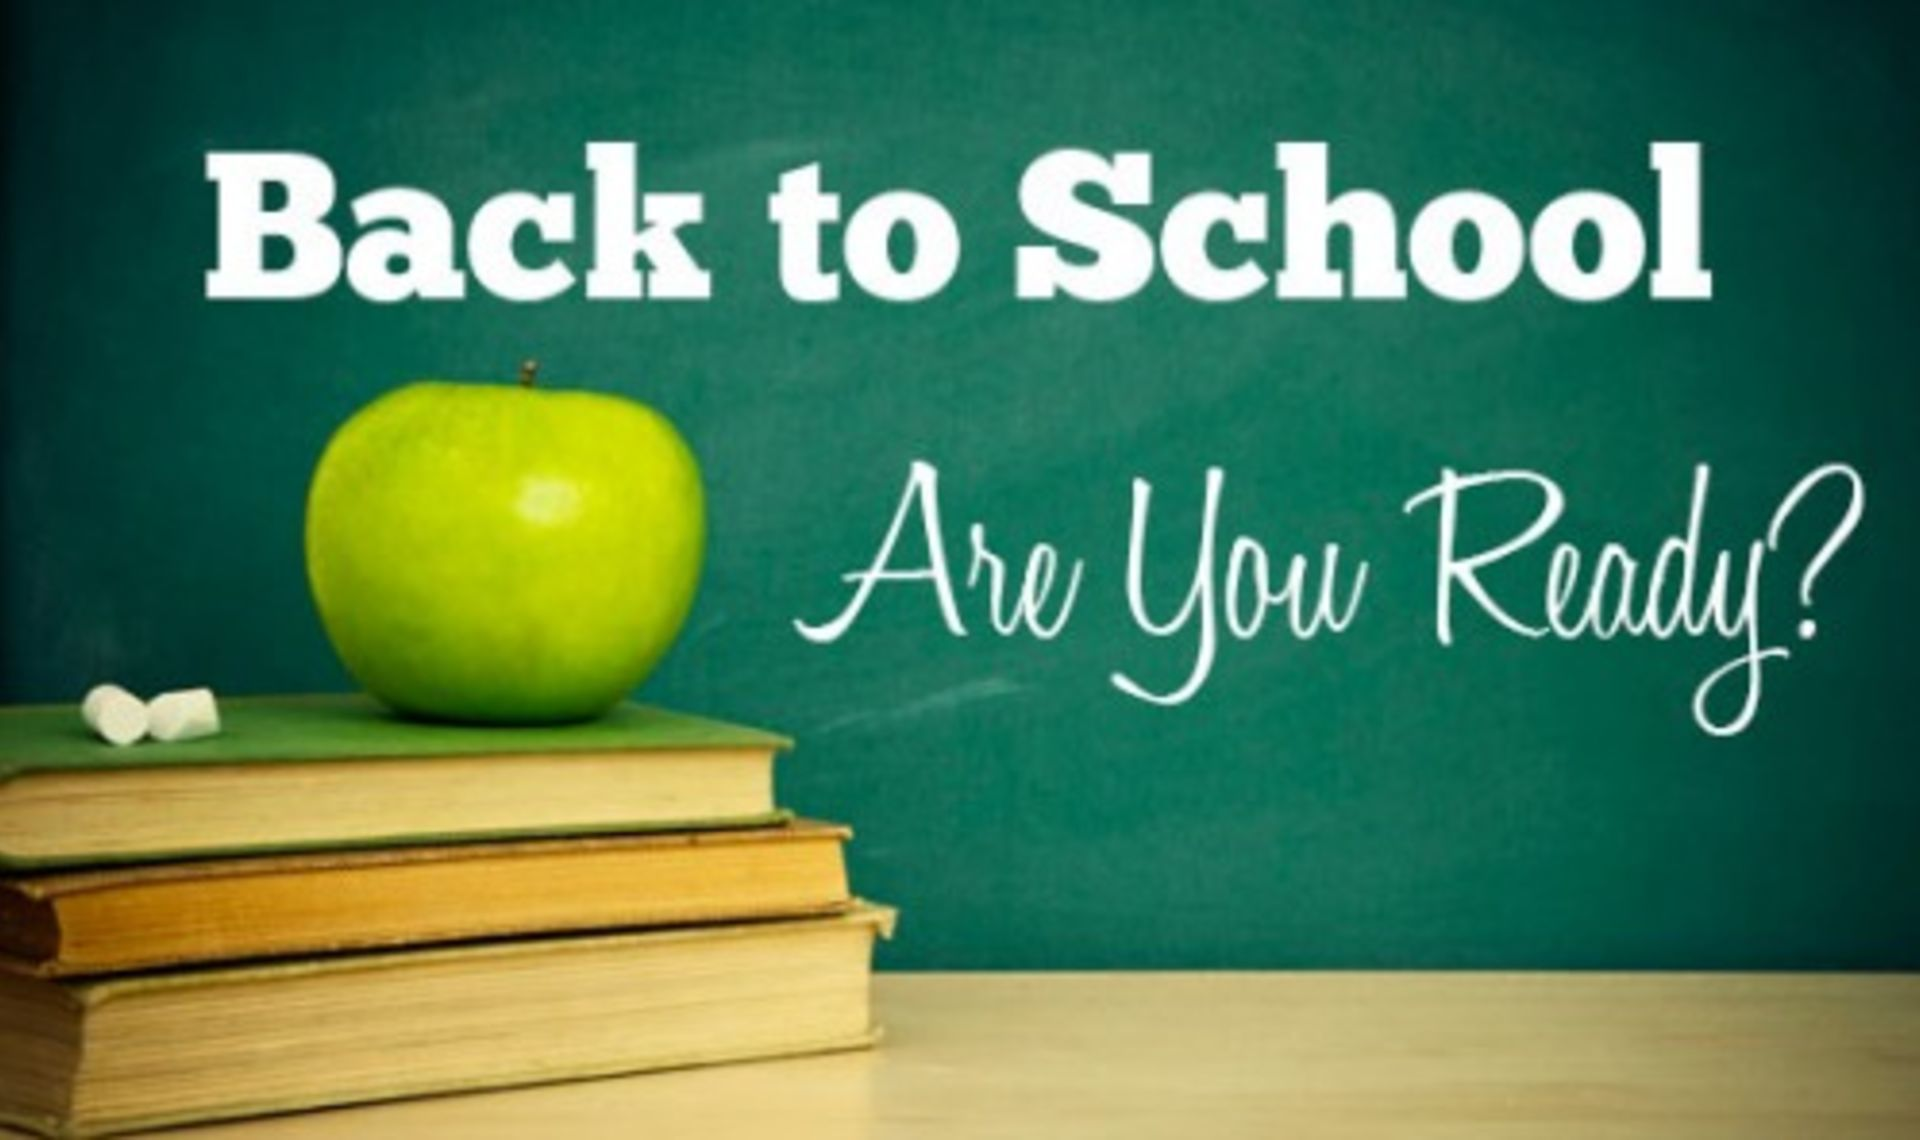 Parents: 10 Apps You Need For Back-to-School